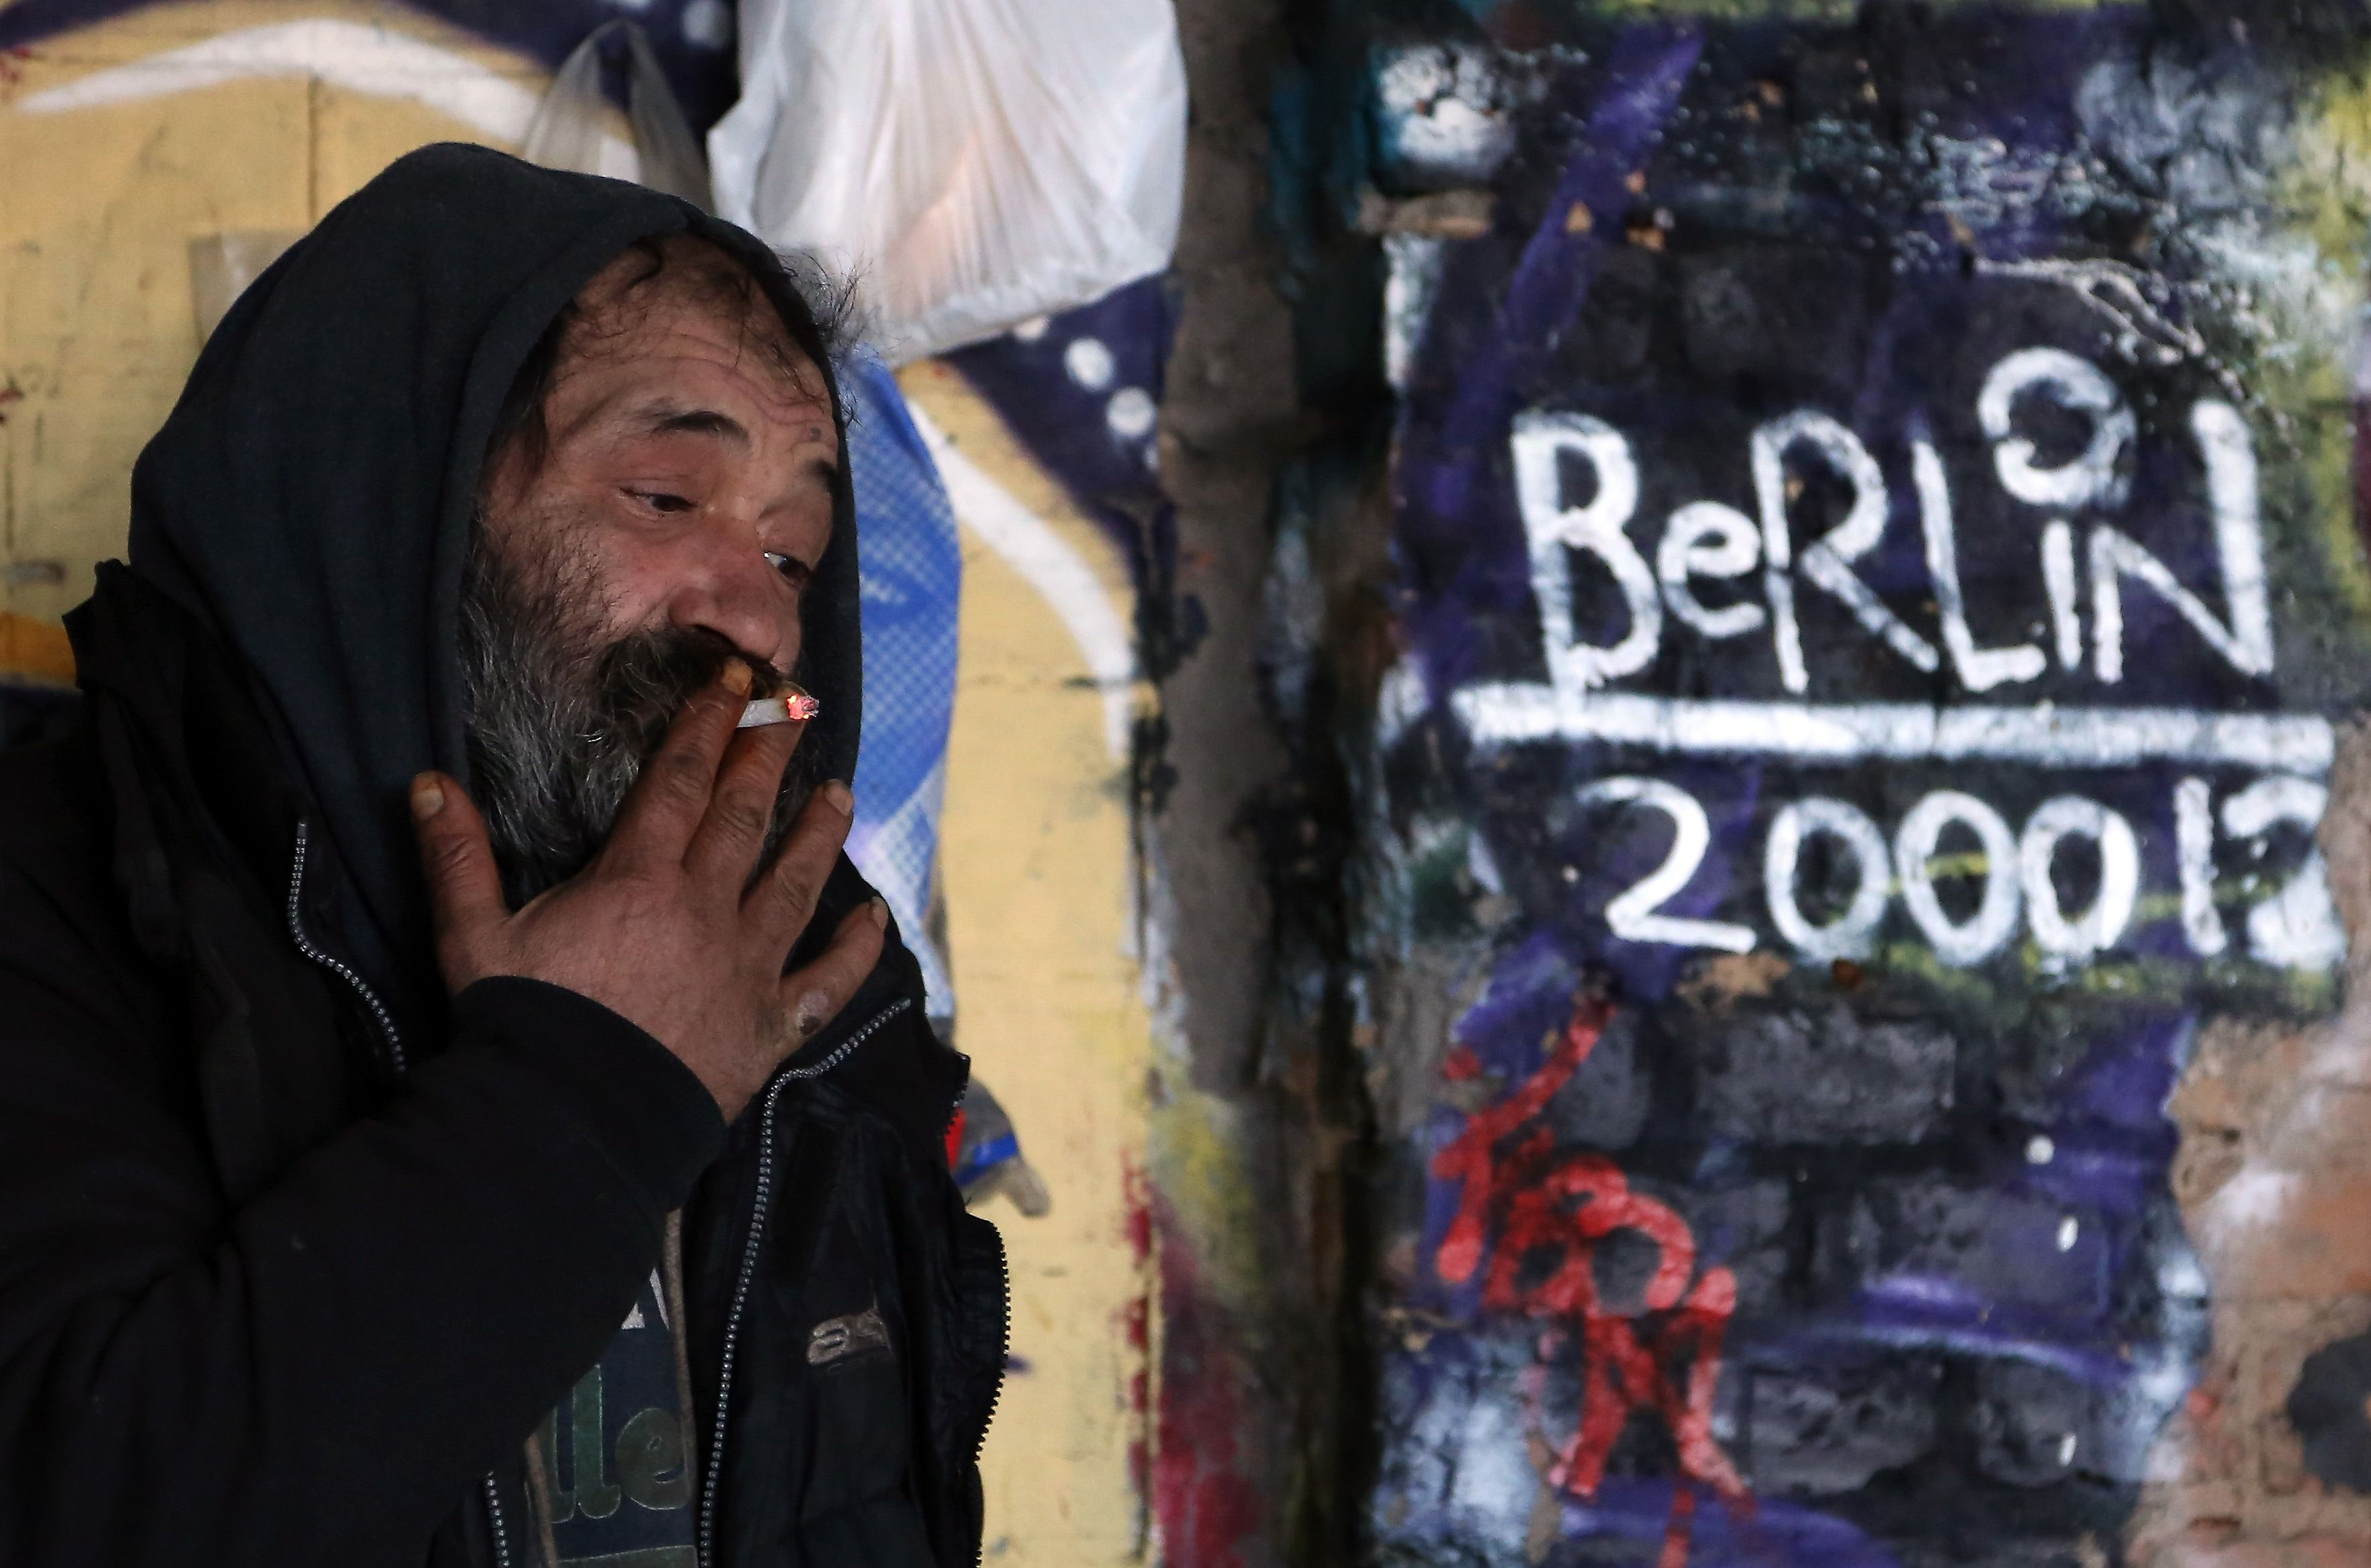 Berlin poverty